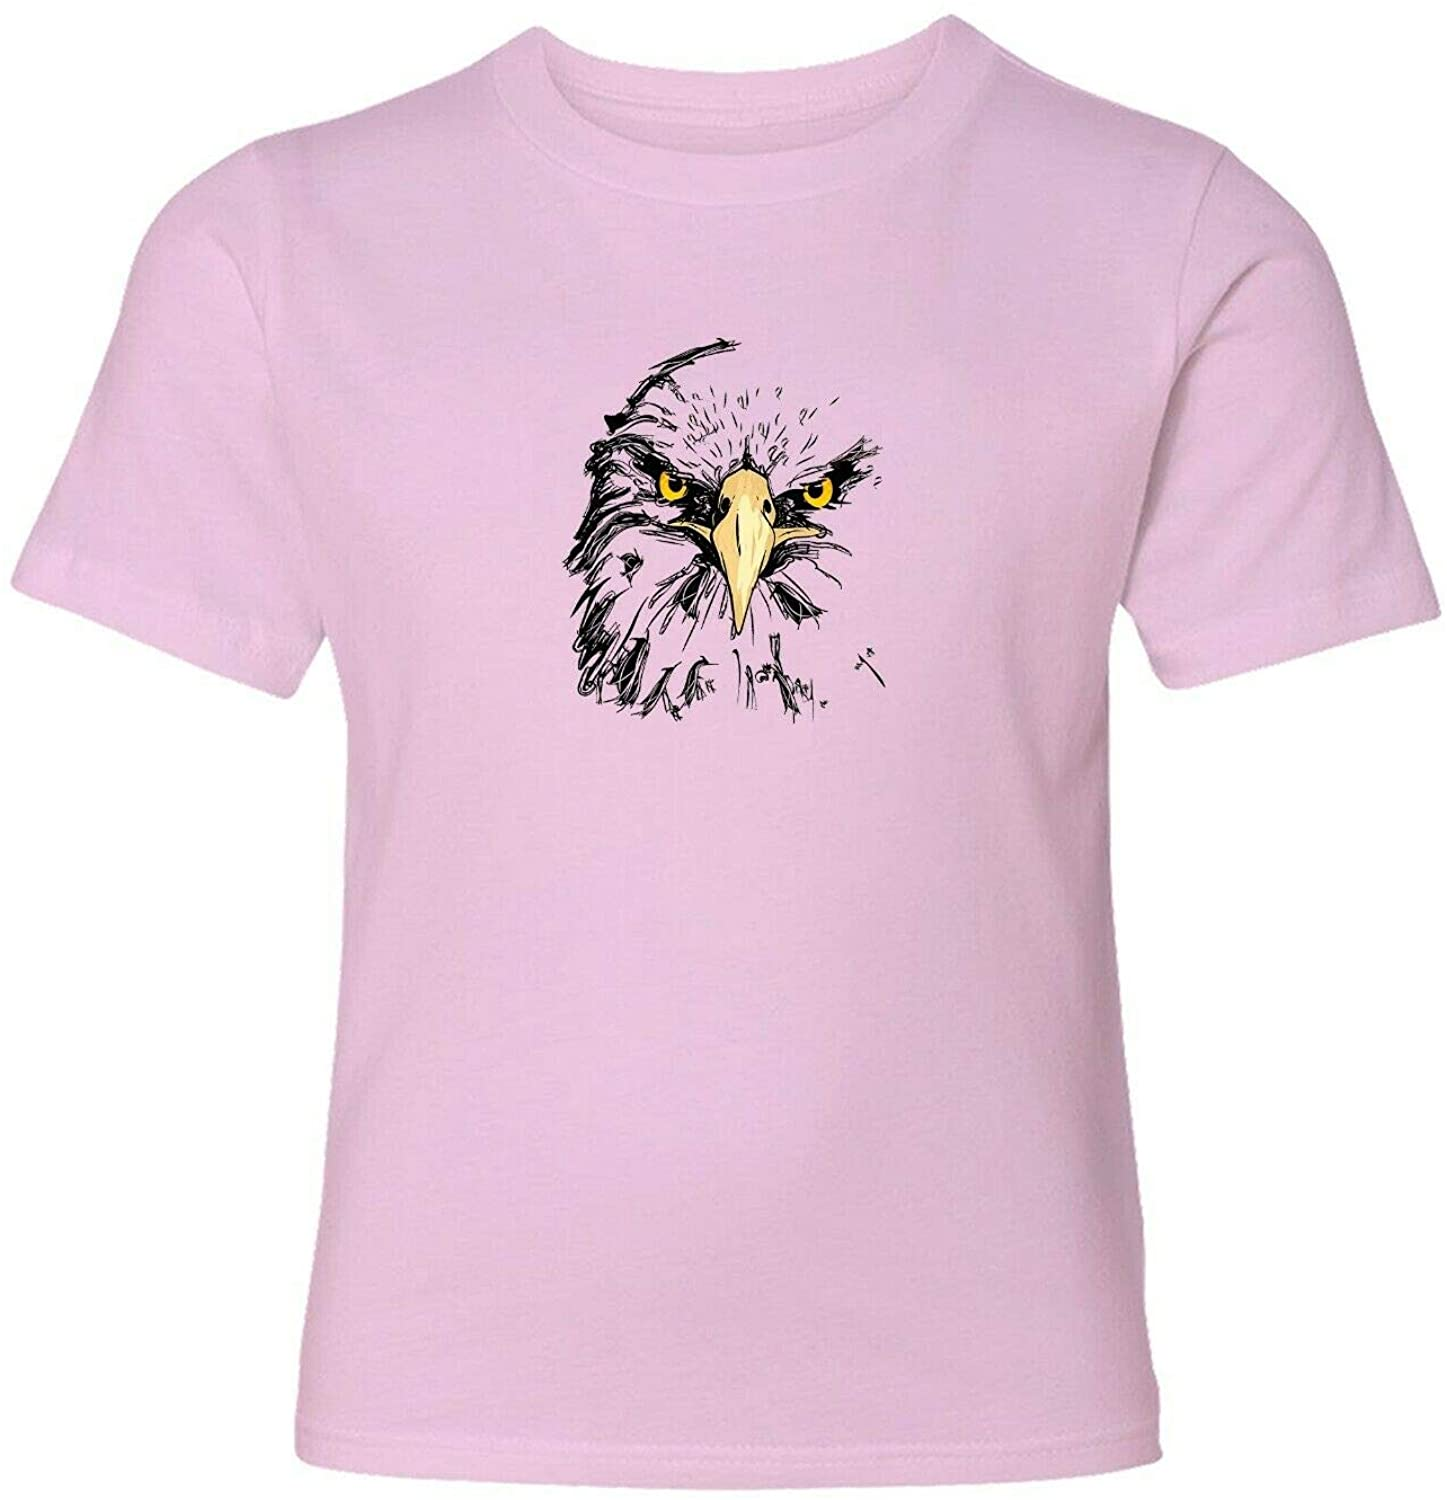 Eagle Face Unisex Mens Women Crew Neck Tee T-Shirt Printed Gift Shirts